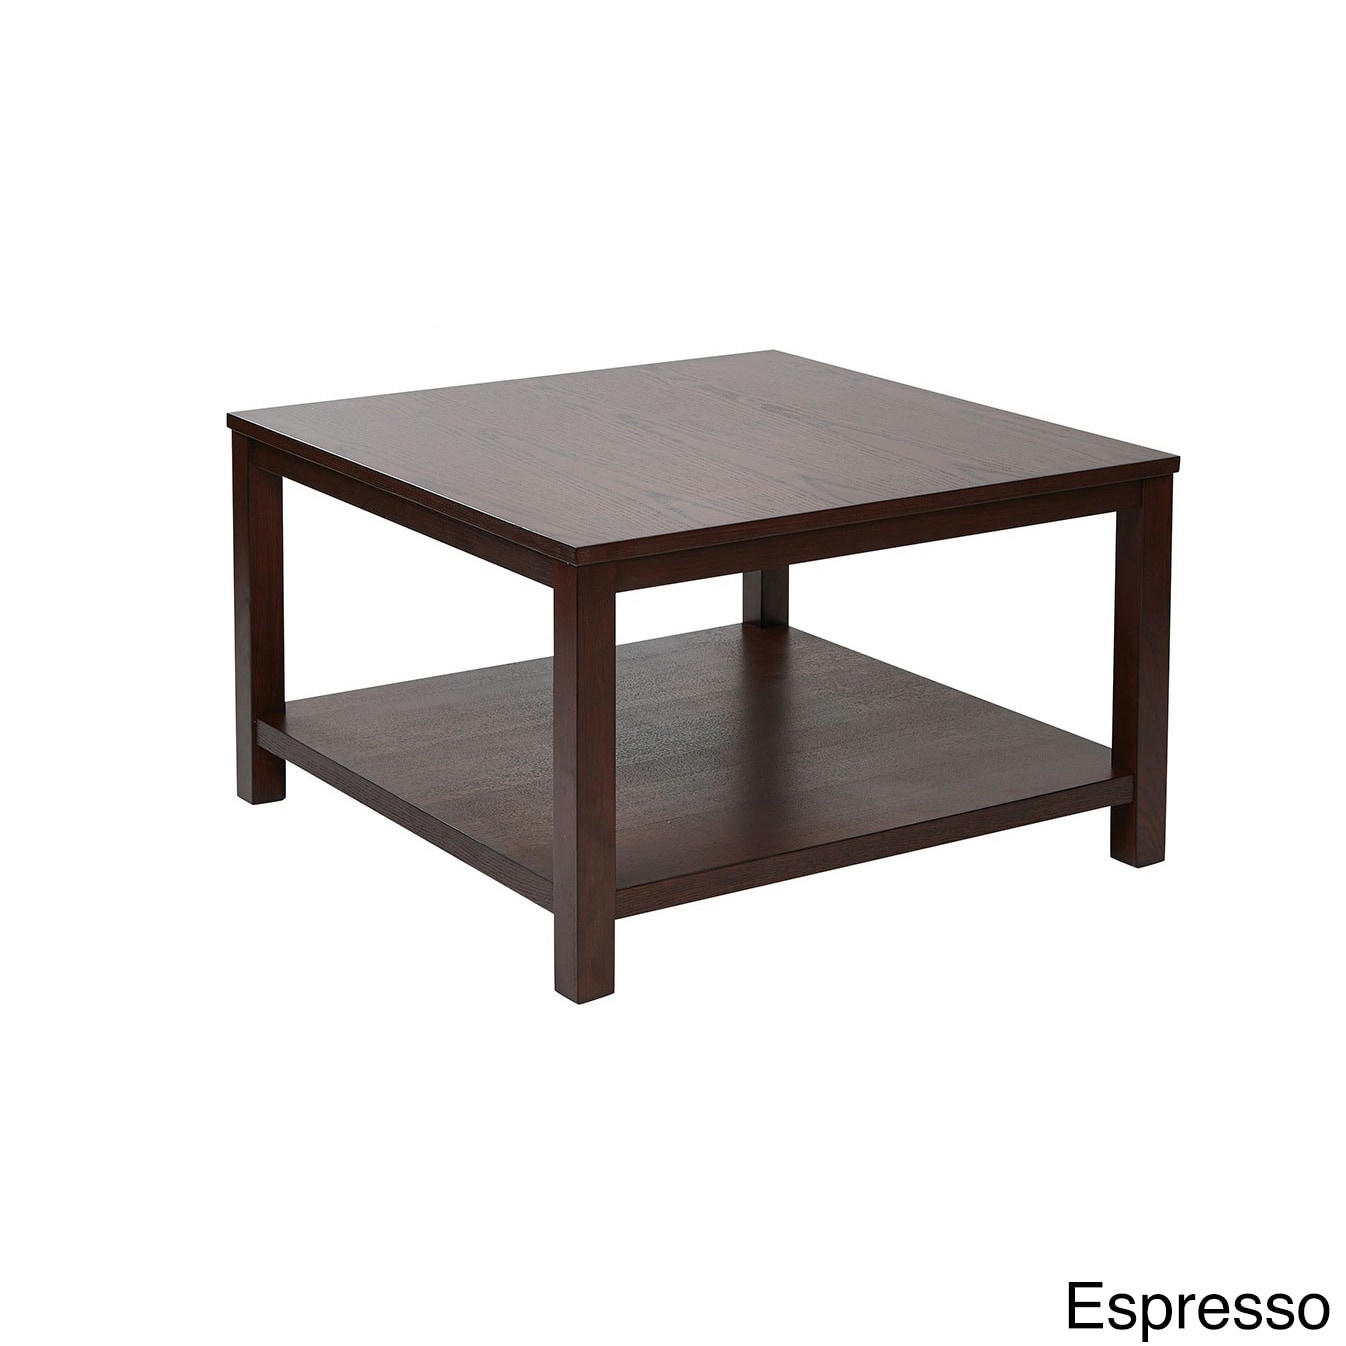 Square Coffee Table With Dual Shelves Solid Wood Legs Grain Finish